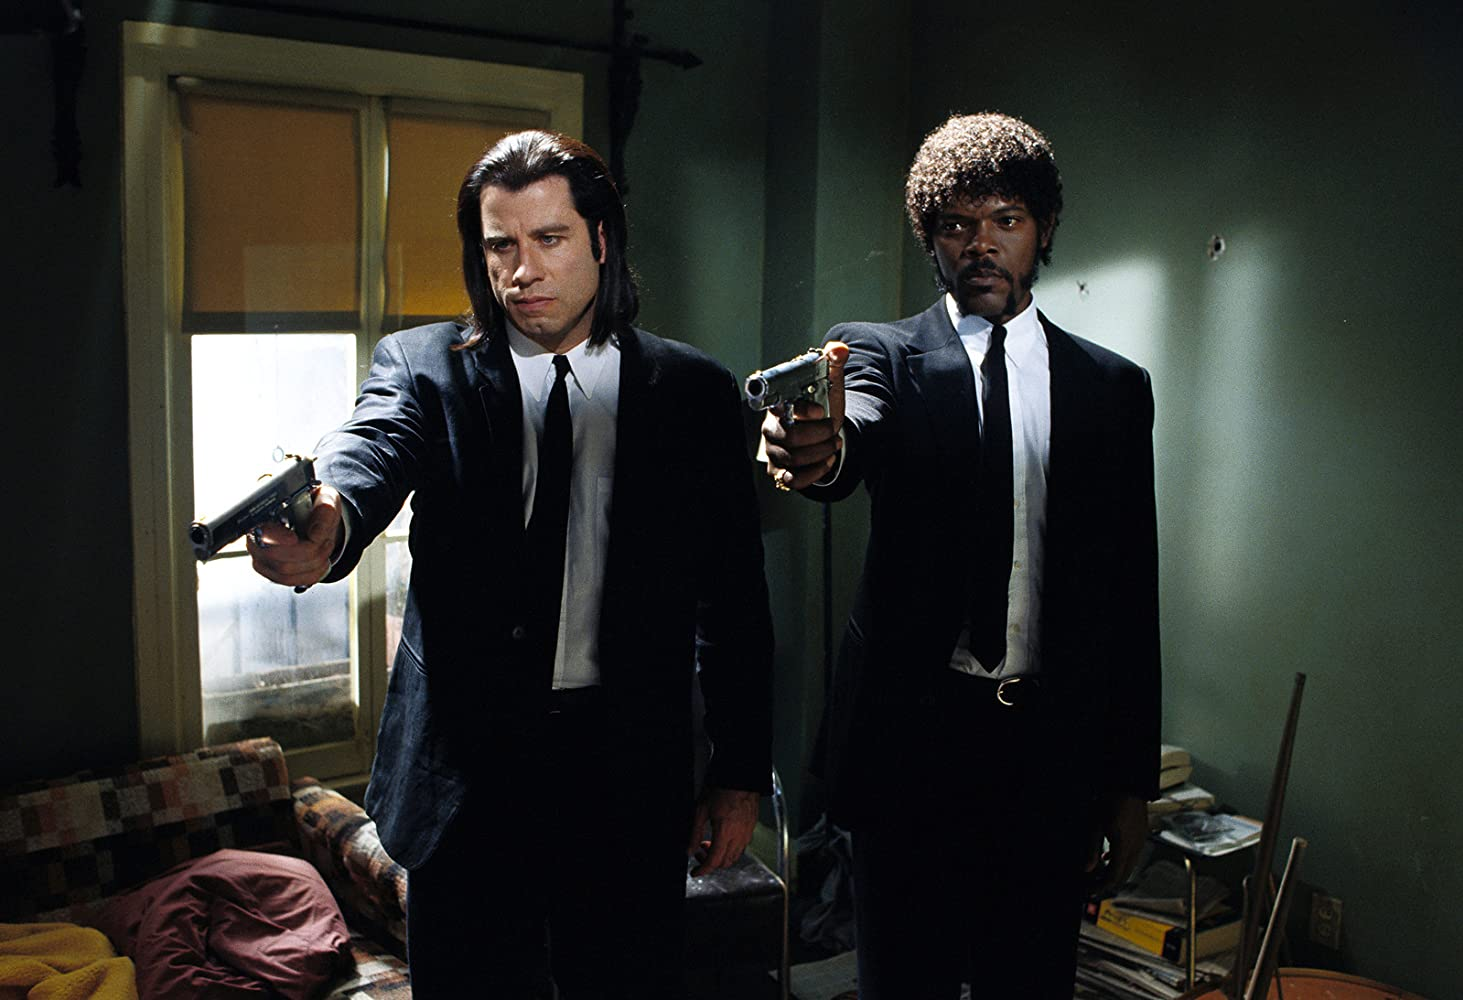 Samuel L. Jackson and John Travolta in Pulp Fiction (1994)